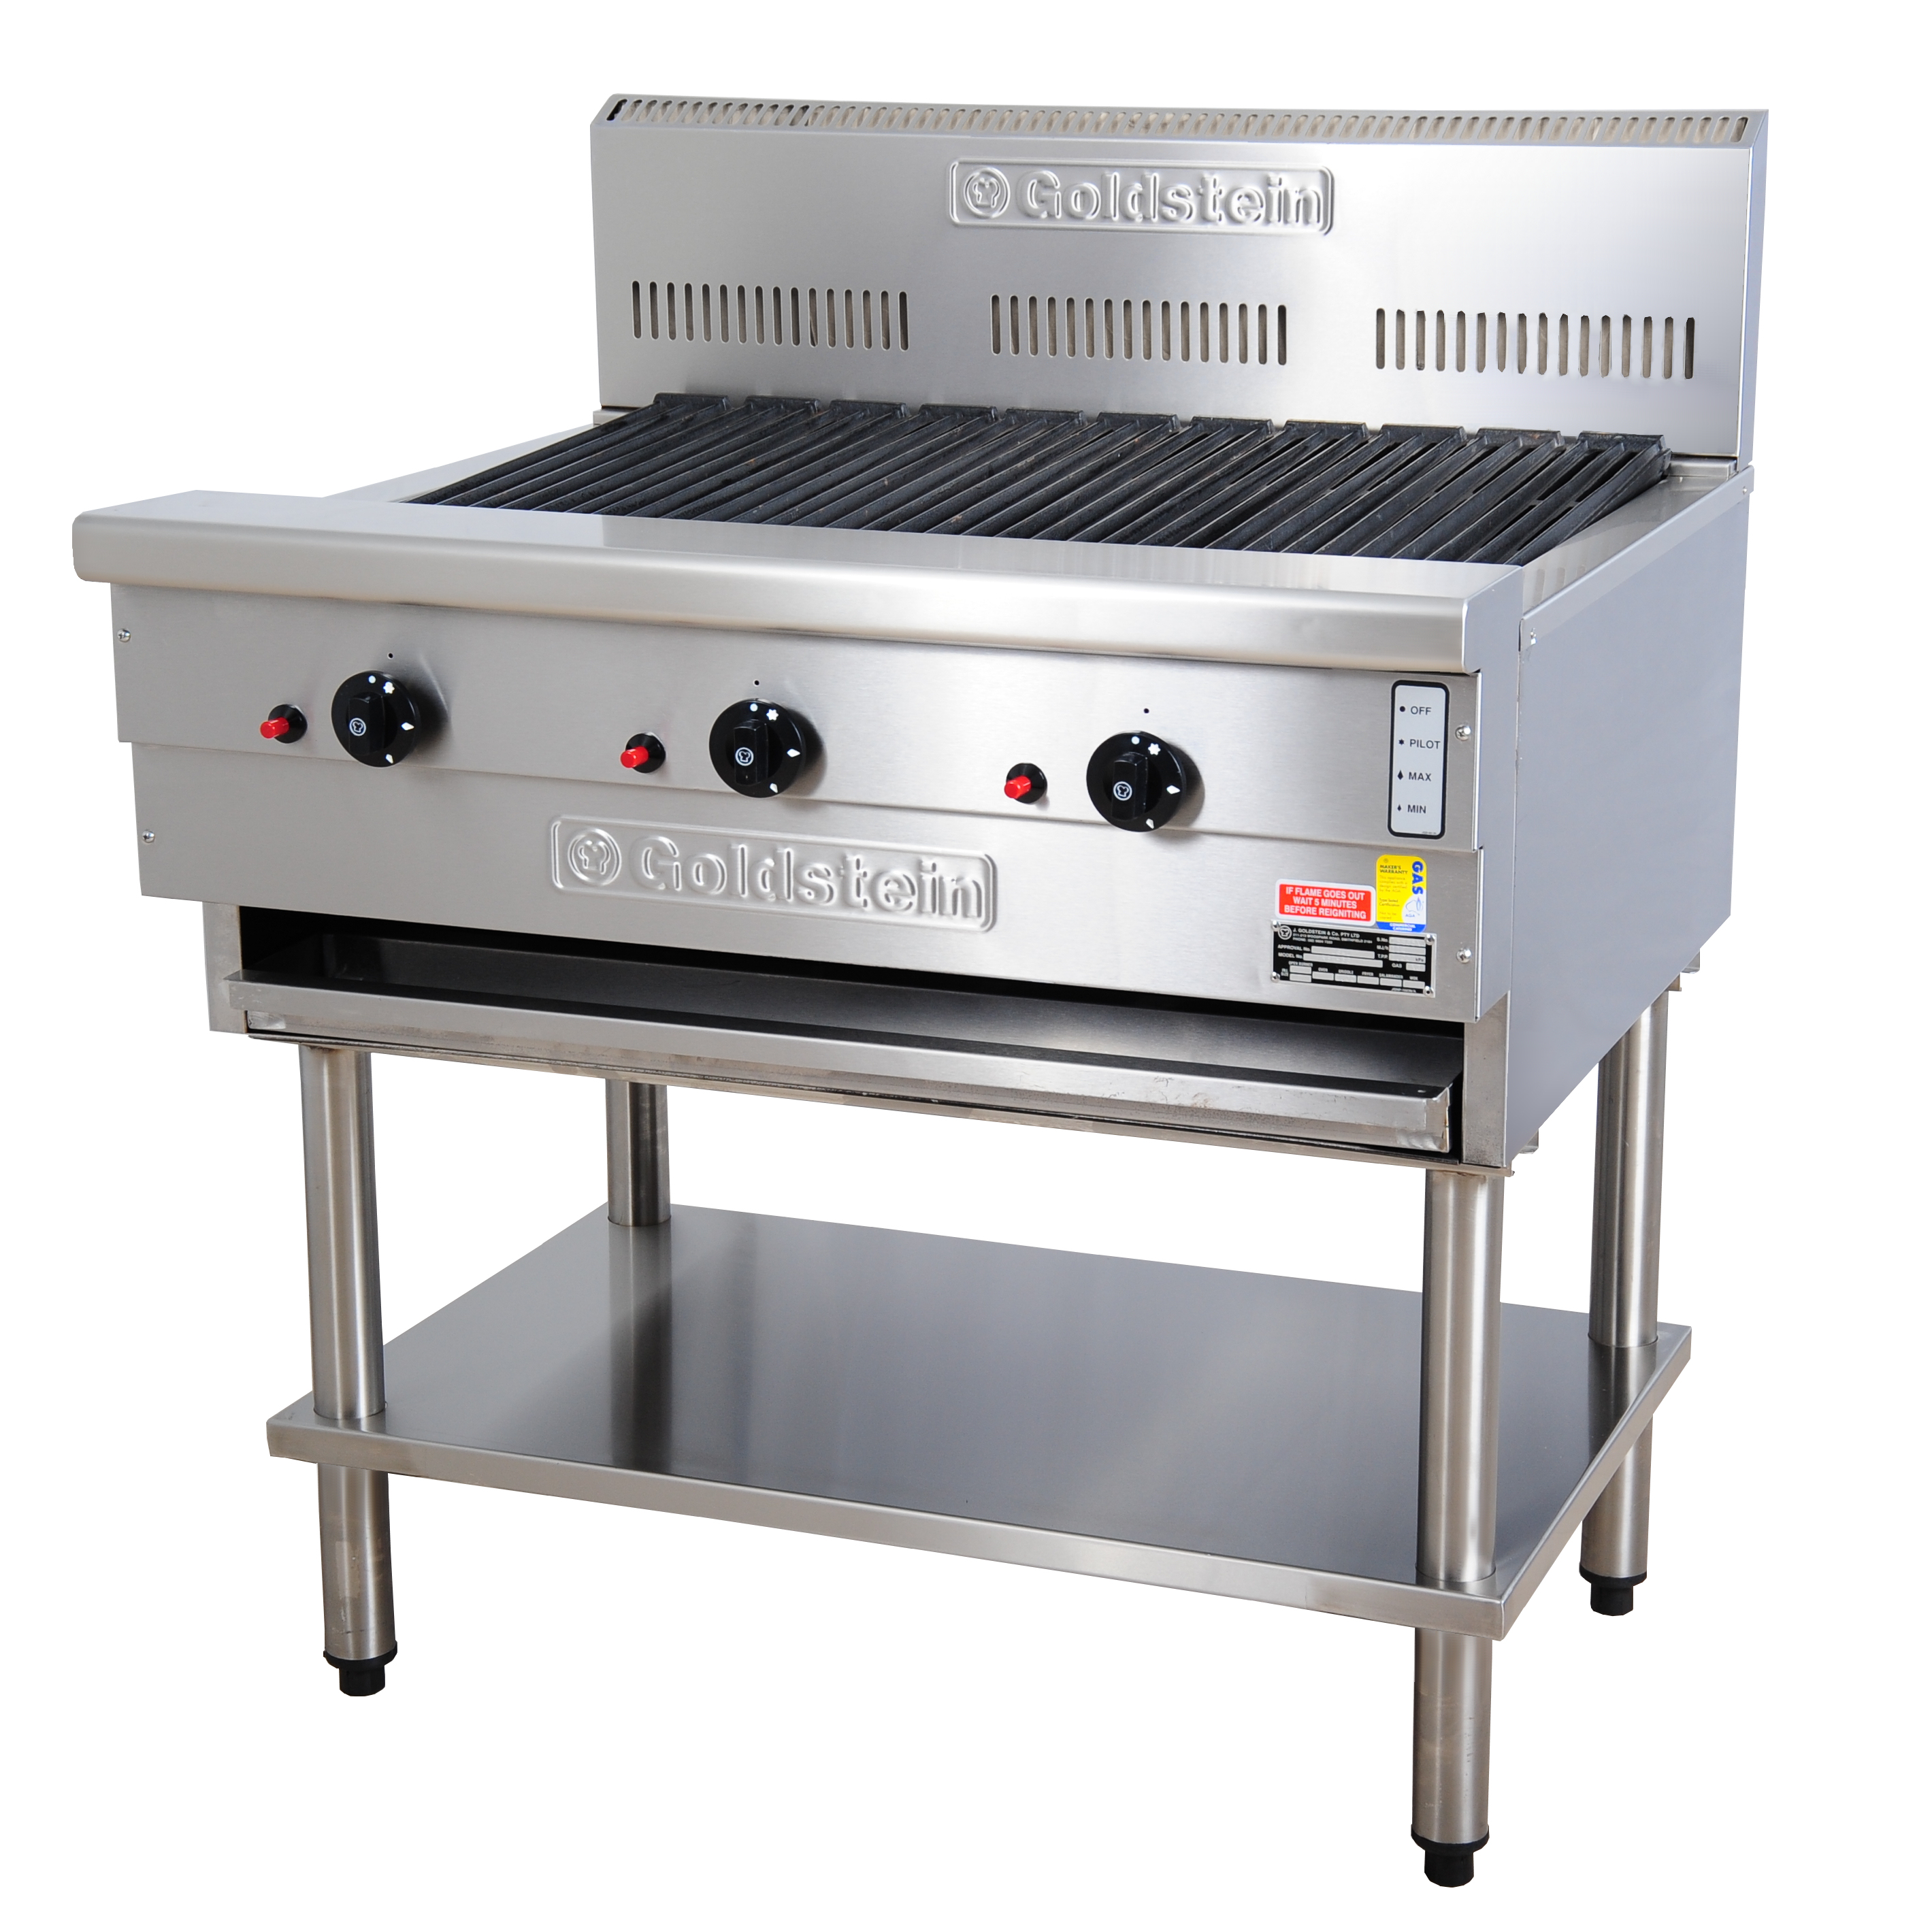 Goldstein 800 series 915mm Wide Gas CharGrill on Stand